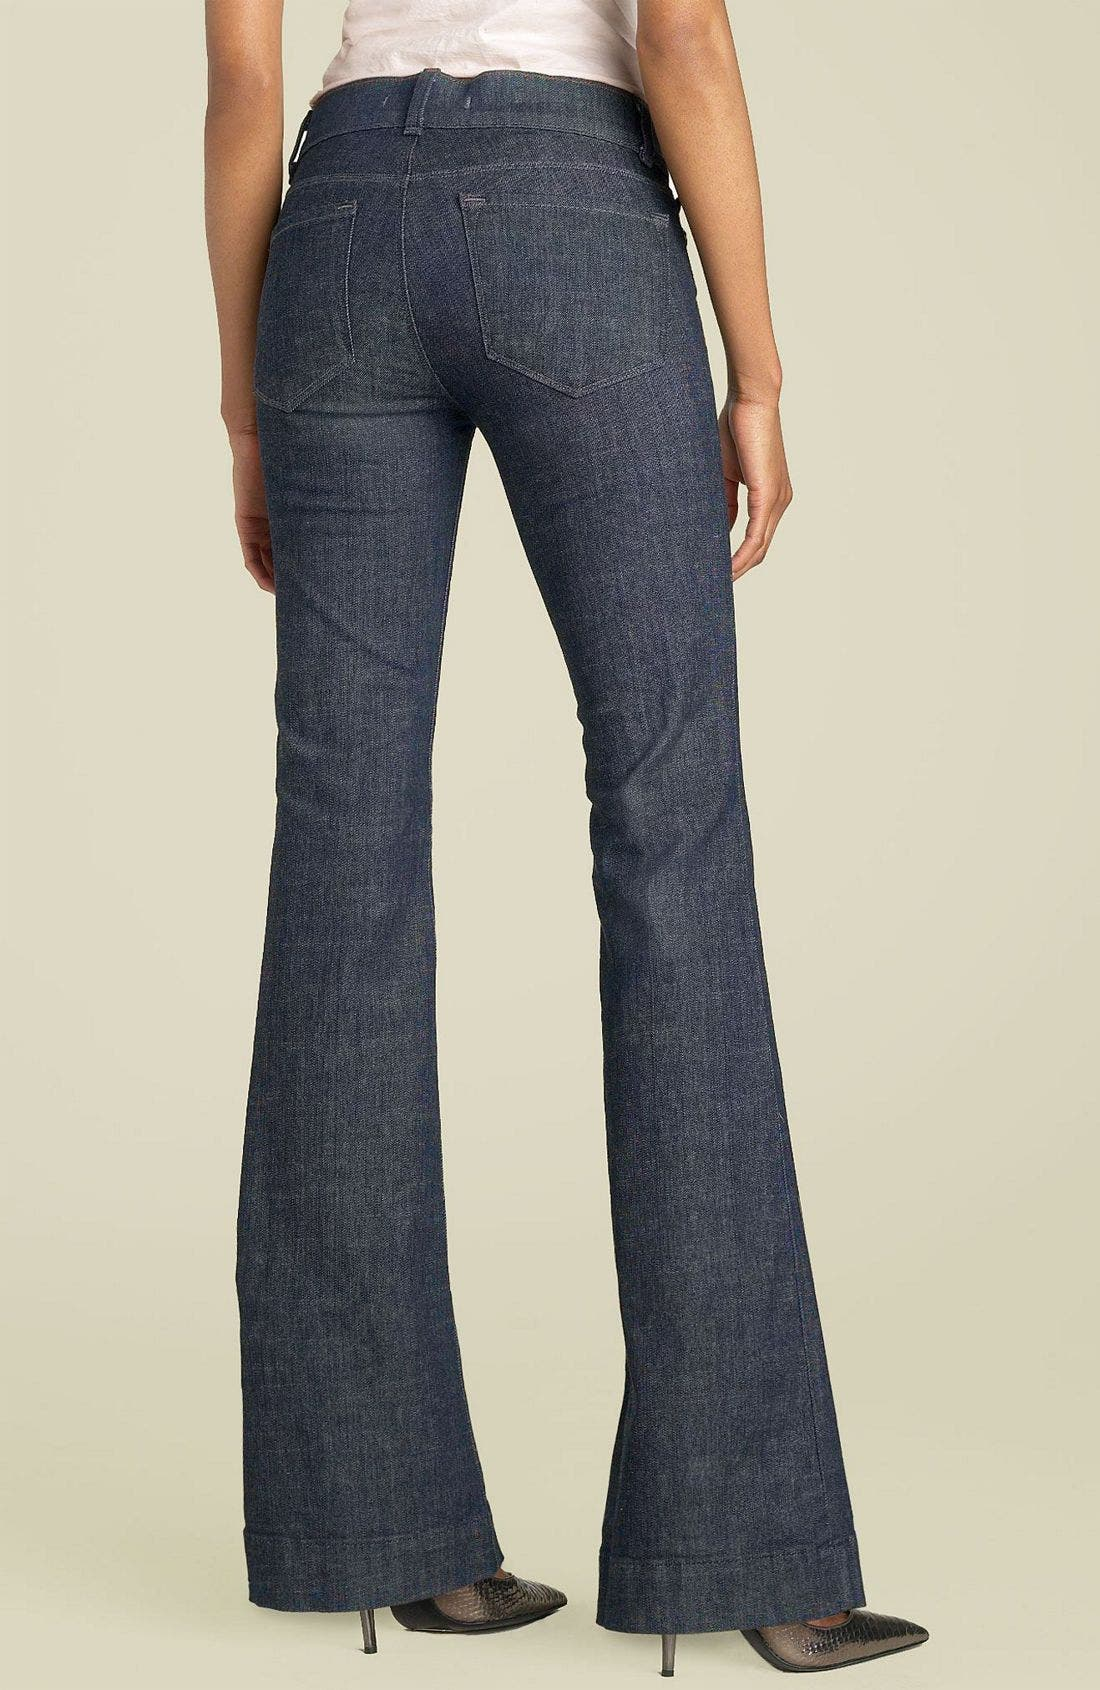 Alternate Image 1 Selected - J Brand 'Lovestory' Low Rise Bell Bottom Stretch Jeans (Miner)